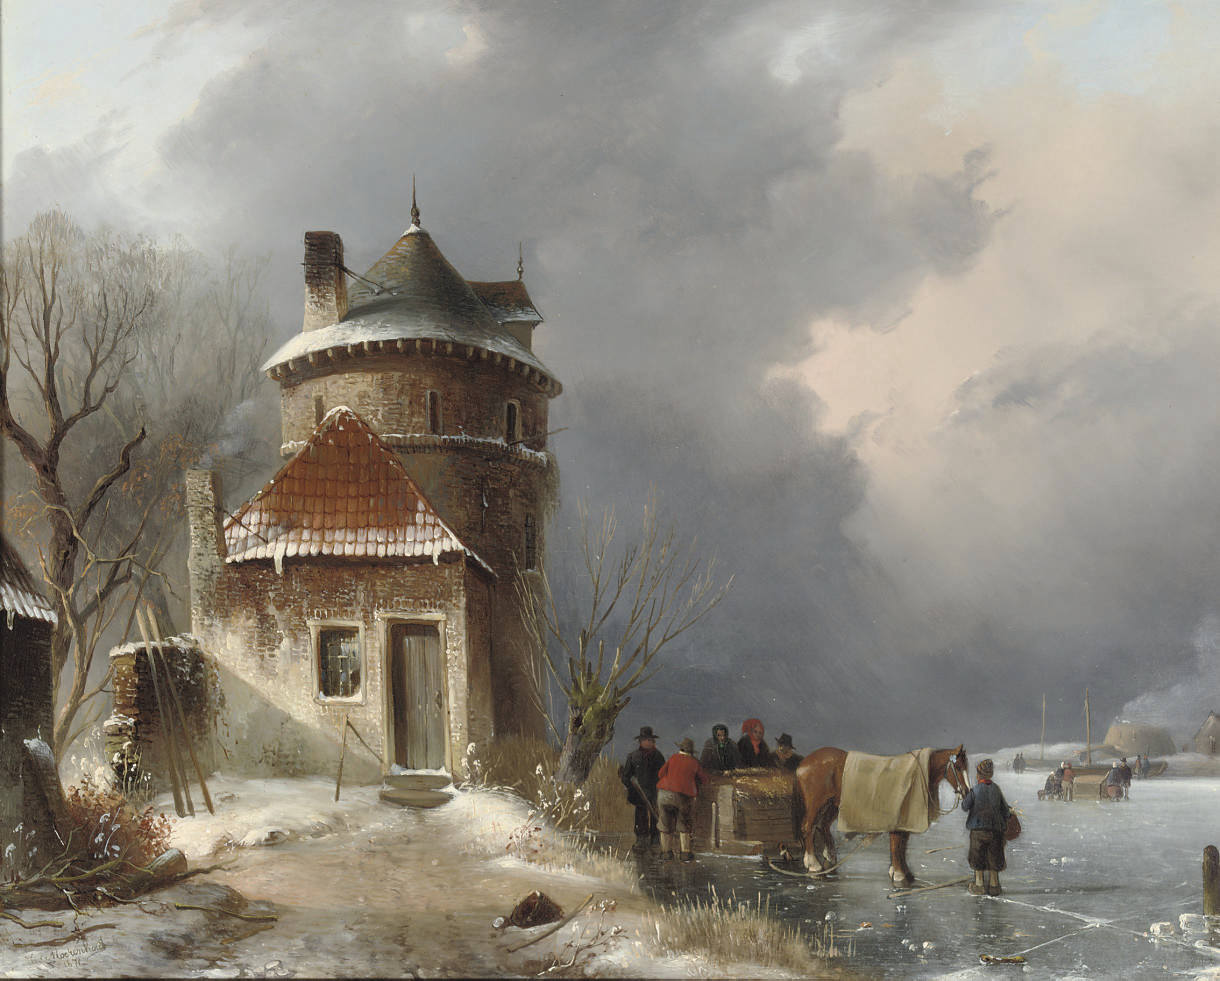 A winter landscape with a horse-drawn sleigh